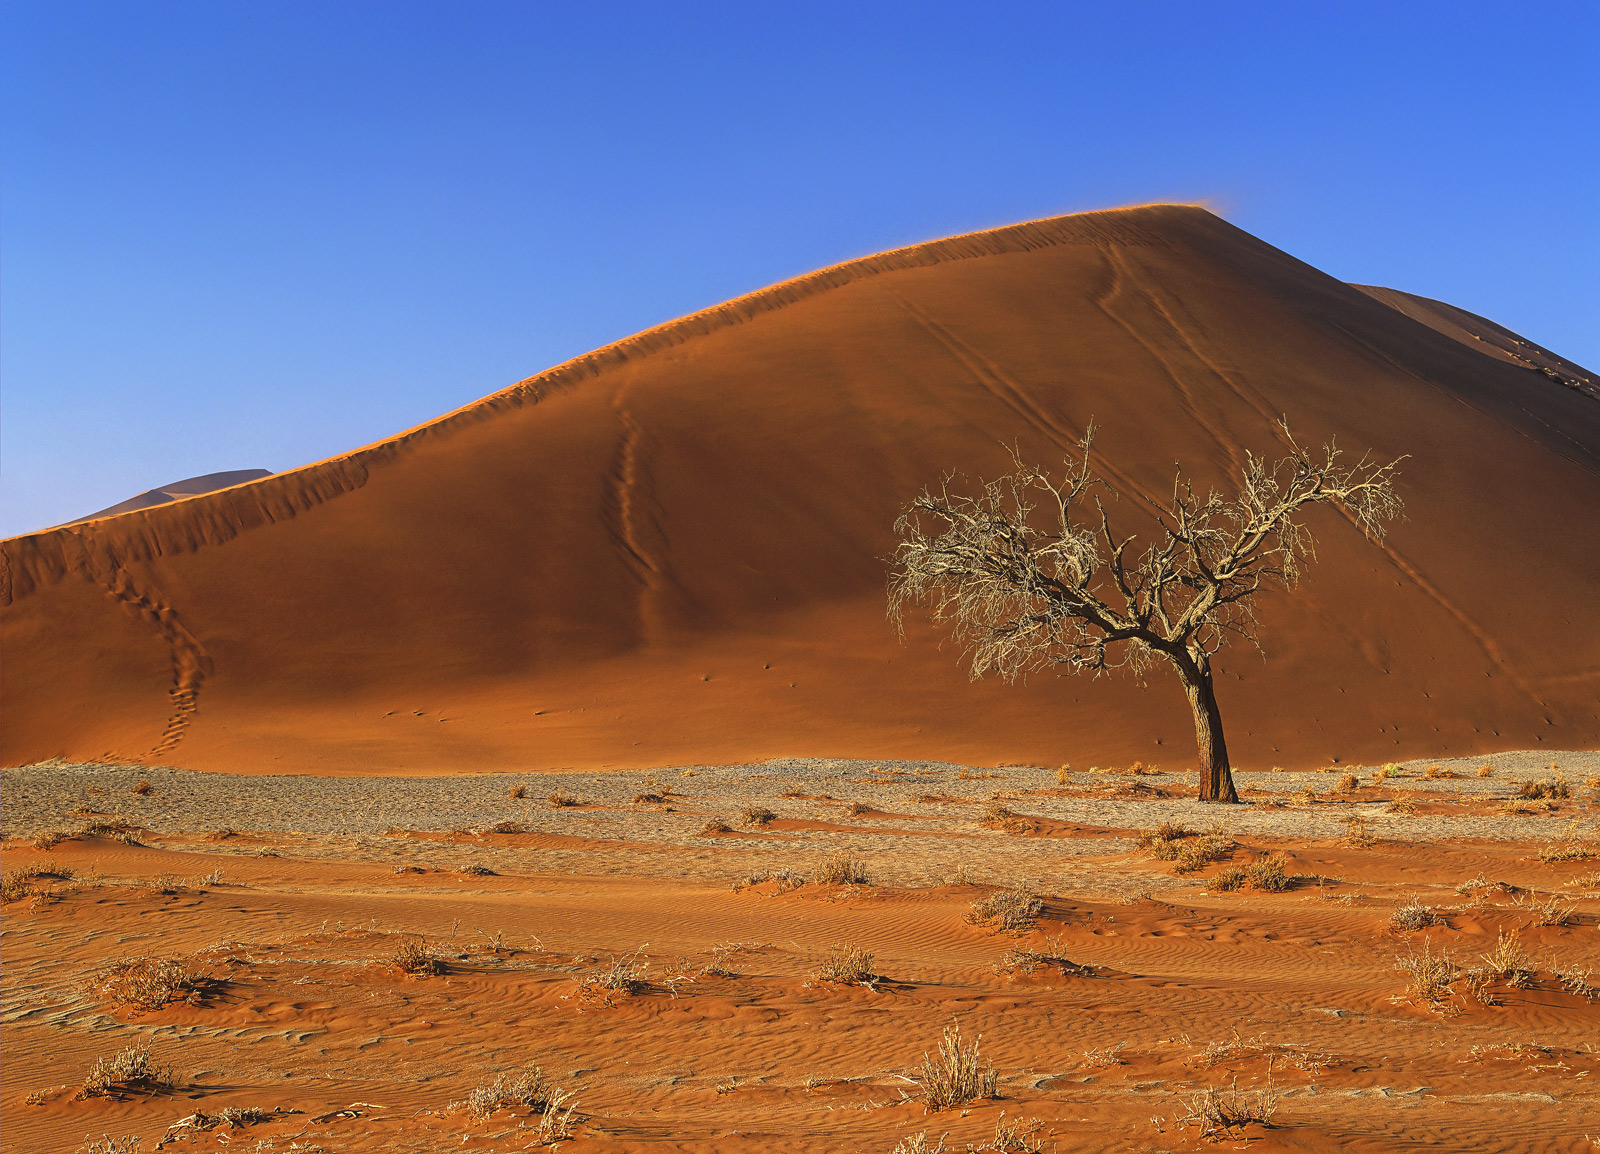 Dune Number 45, Sossusvlei, Namibia, Africa, massive, dune, summit, tree, flank, grazing, texture, contrast , photo